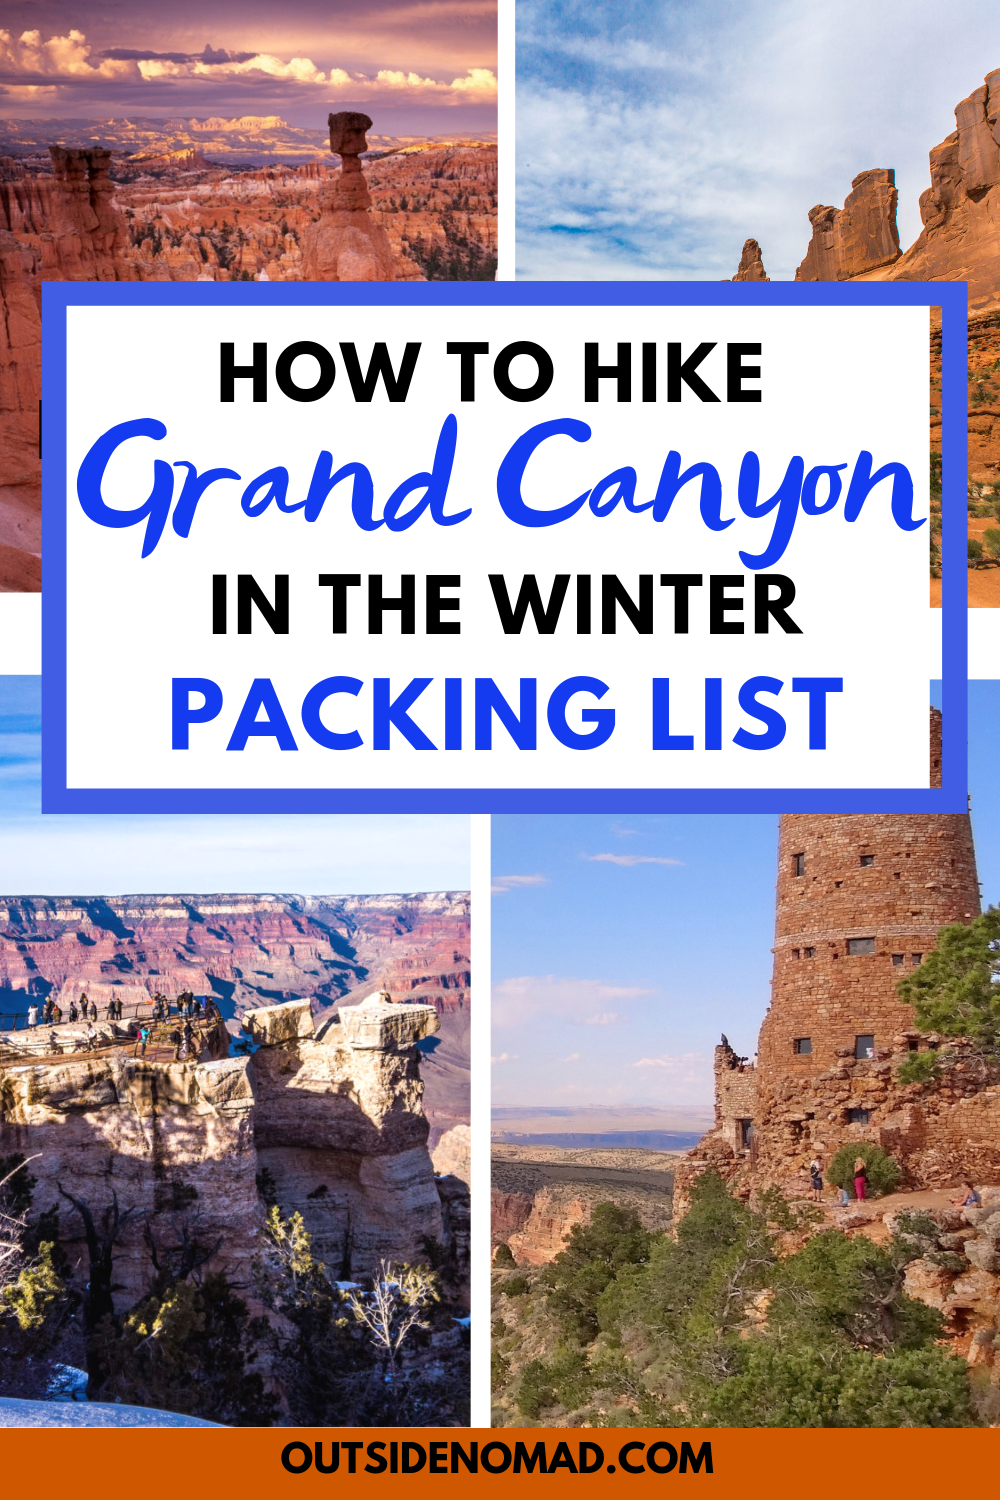 Ultimate Packing List For Hiking Grand Canyon In Winter #ultimatepackinglist The ultimate packing list for hiking or backpacking the Grand Canyon. Tips for hiking and backpacking the Grand Canyon in winter where you will have the place to yourself.  Skip the crowds and visit Grand Canyon National Park in the winter.  Comprehensive packing list for both summer and winter hiking and backpacking in Grand Canyon National Park. #ultimatepackinglist